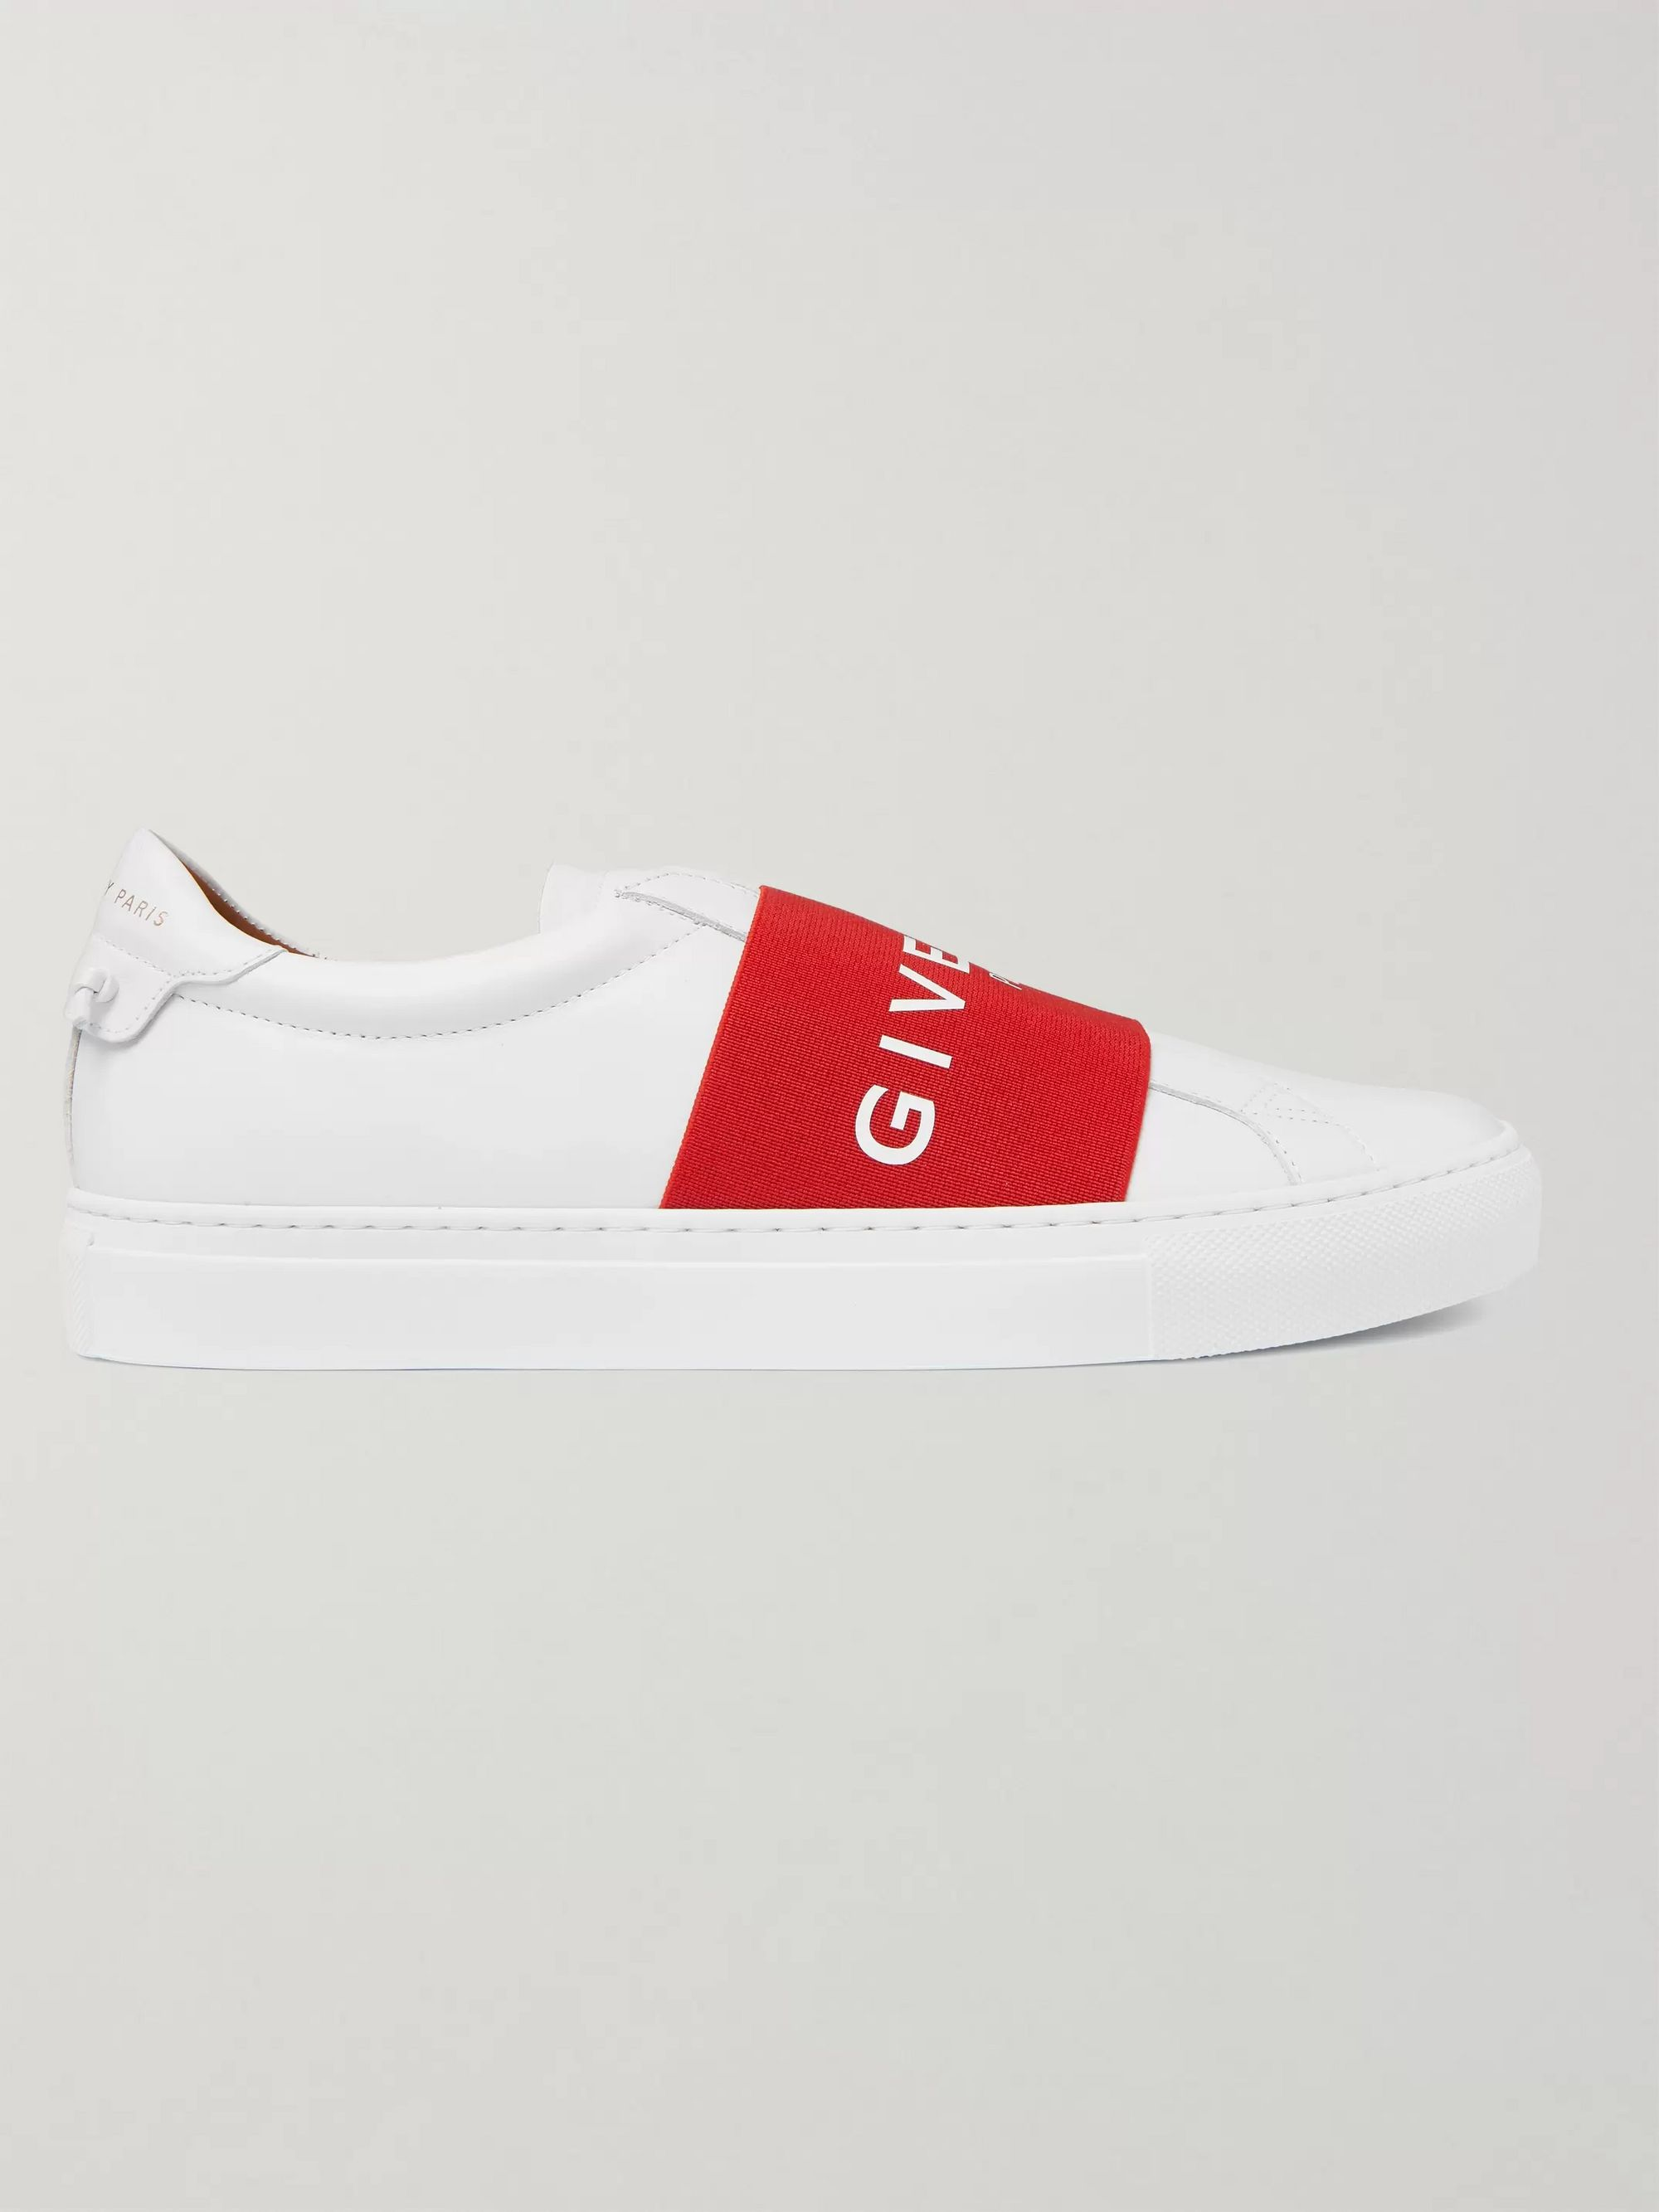 Givenchy Urban Street Logo-Print Leather Slip-On Sneakers